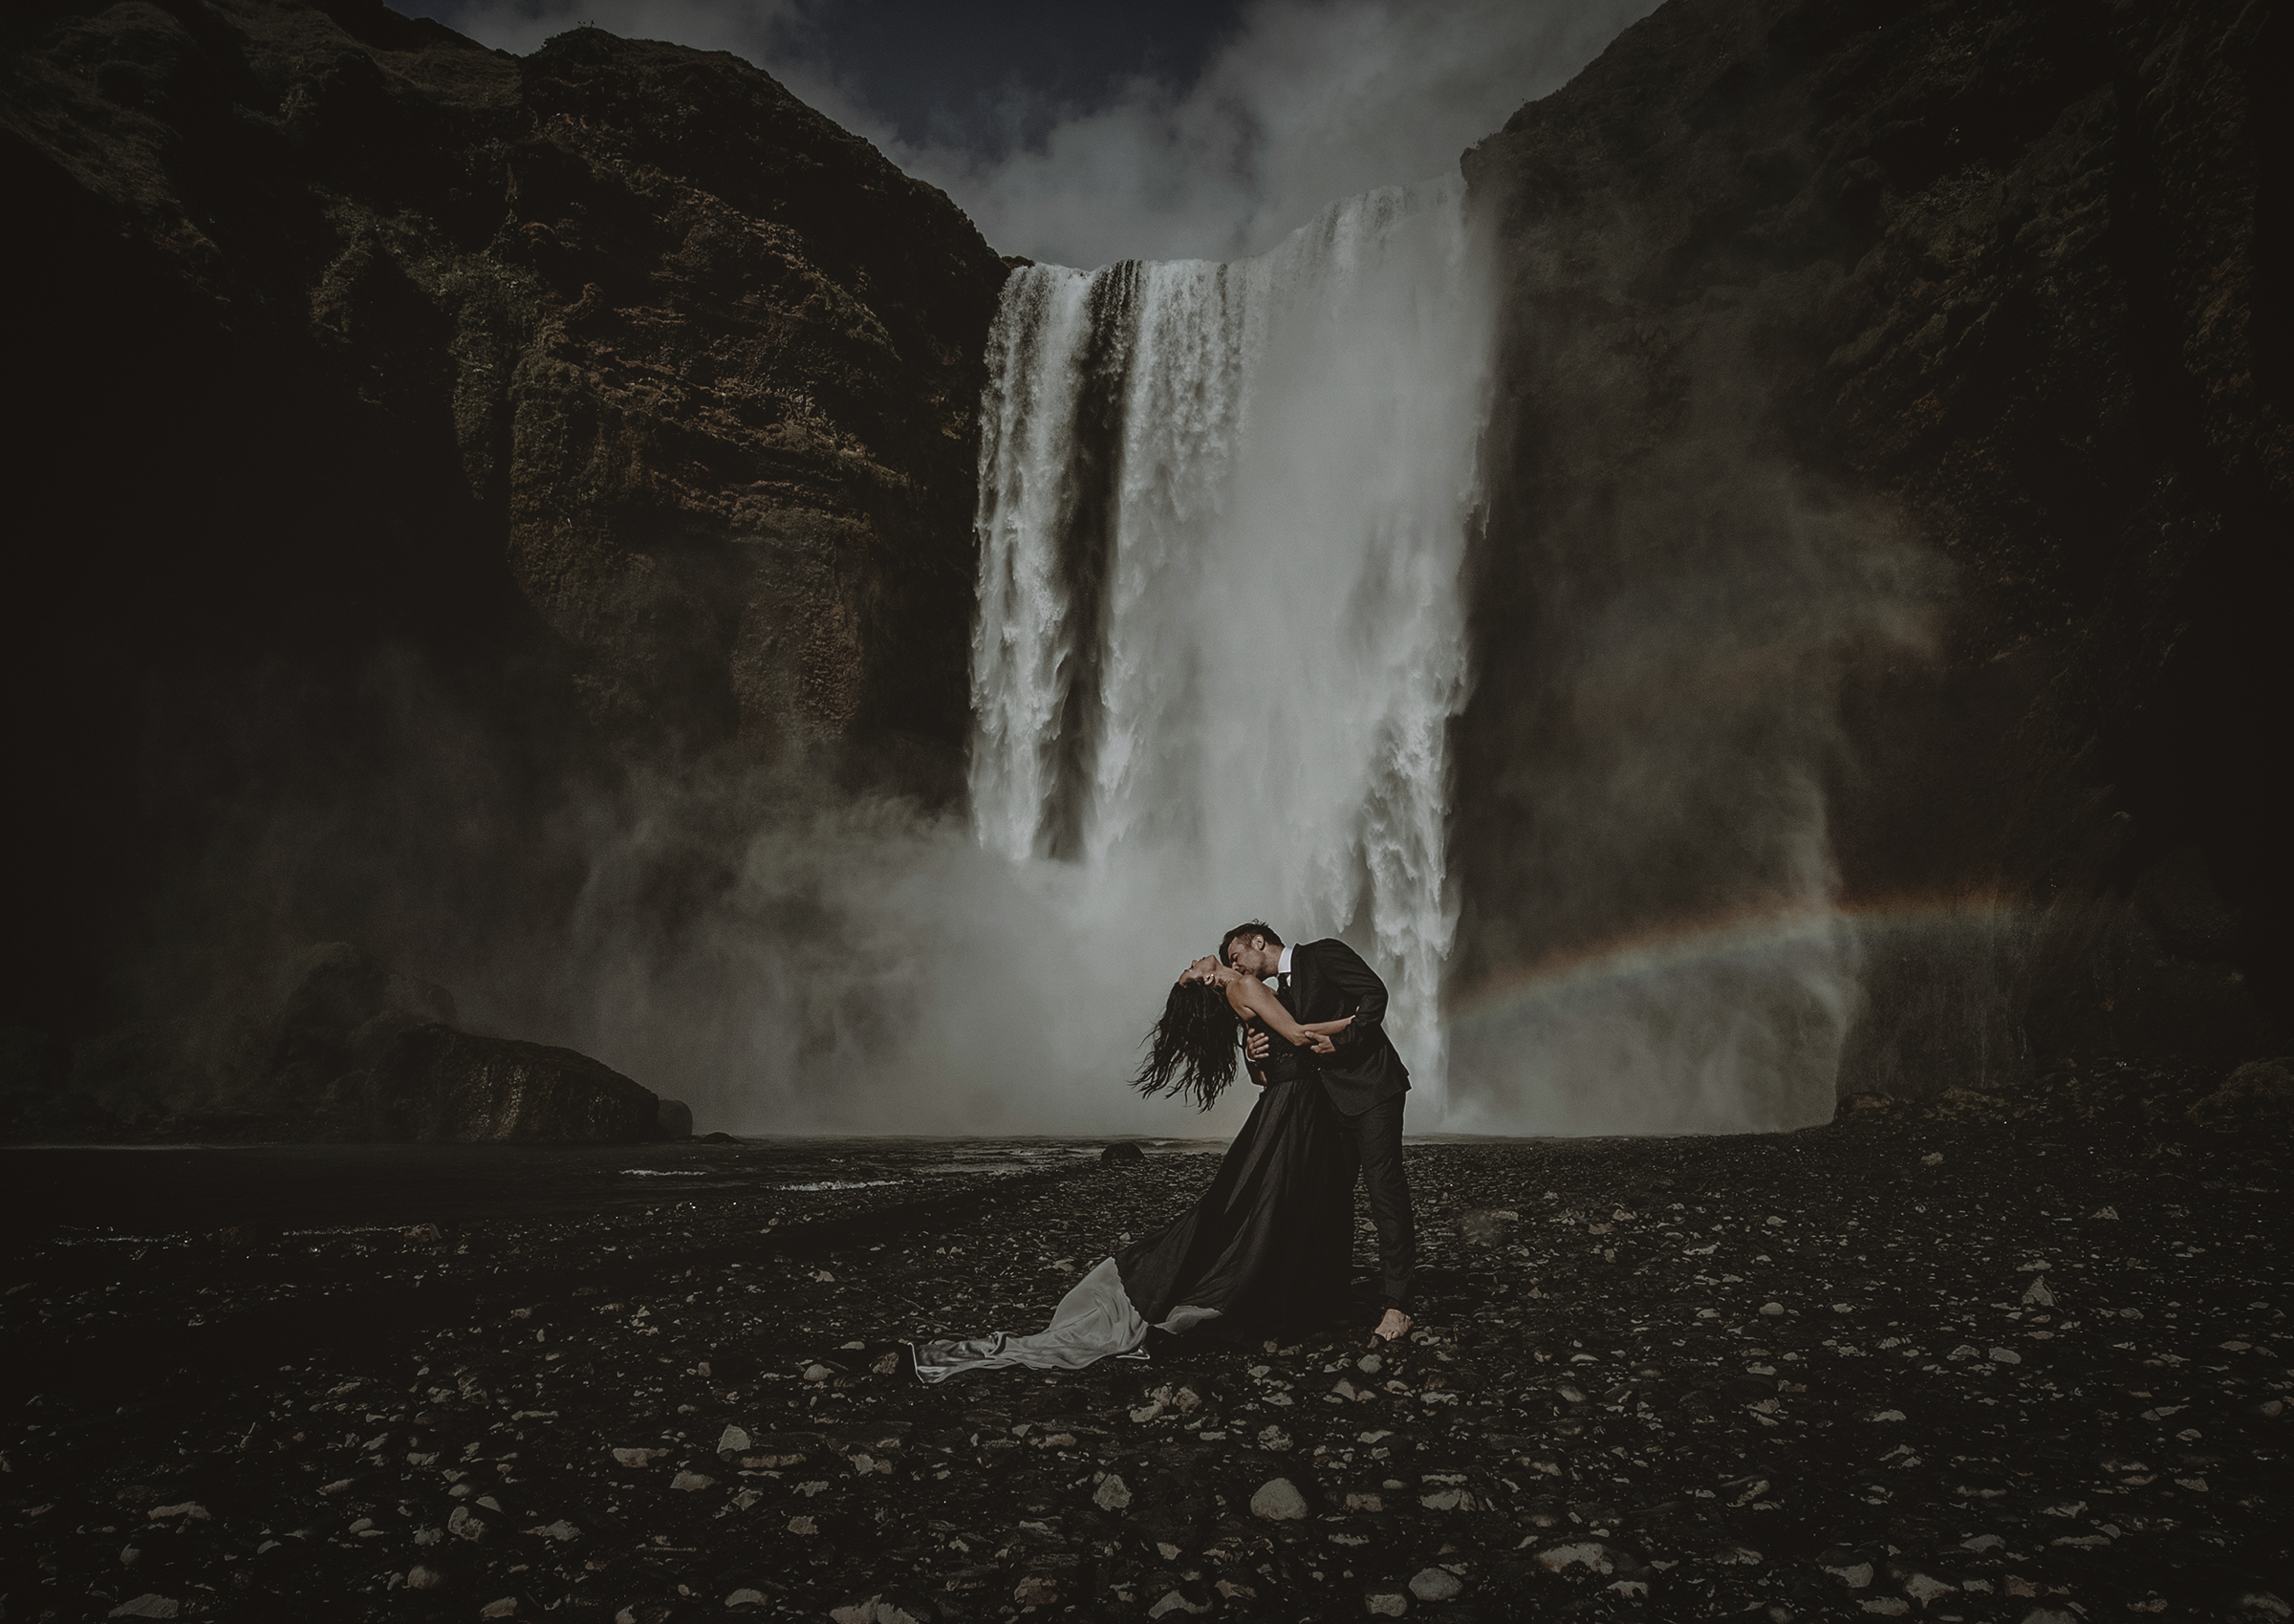 Dramatic kiss at waterfall with rainbow - photo by Frøydis